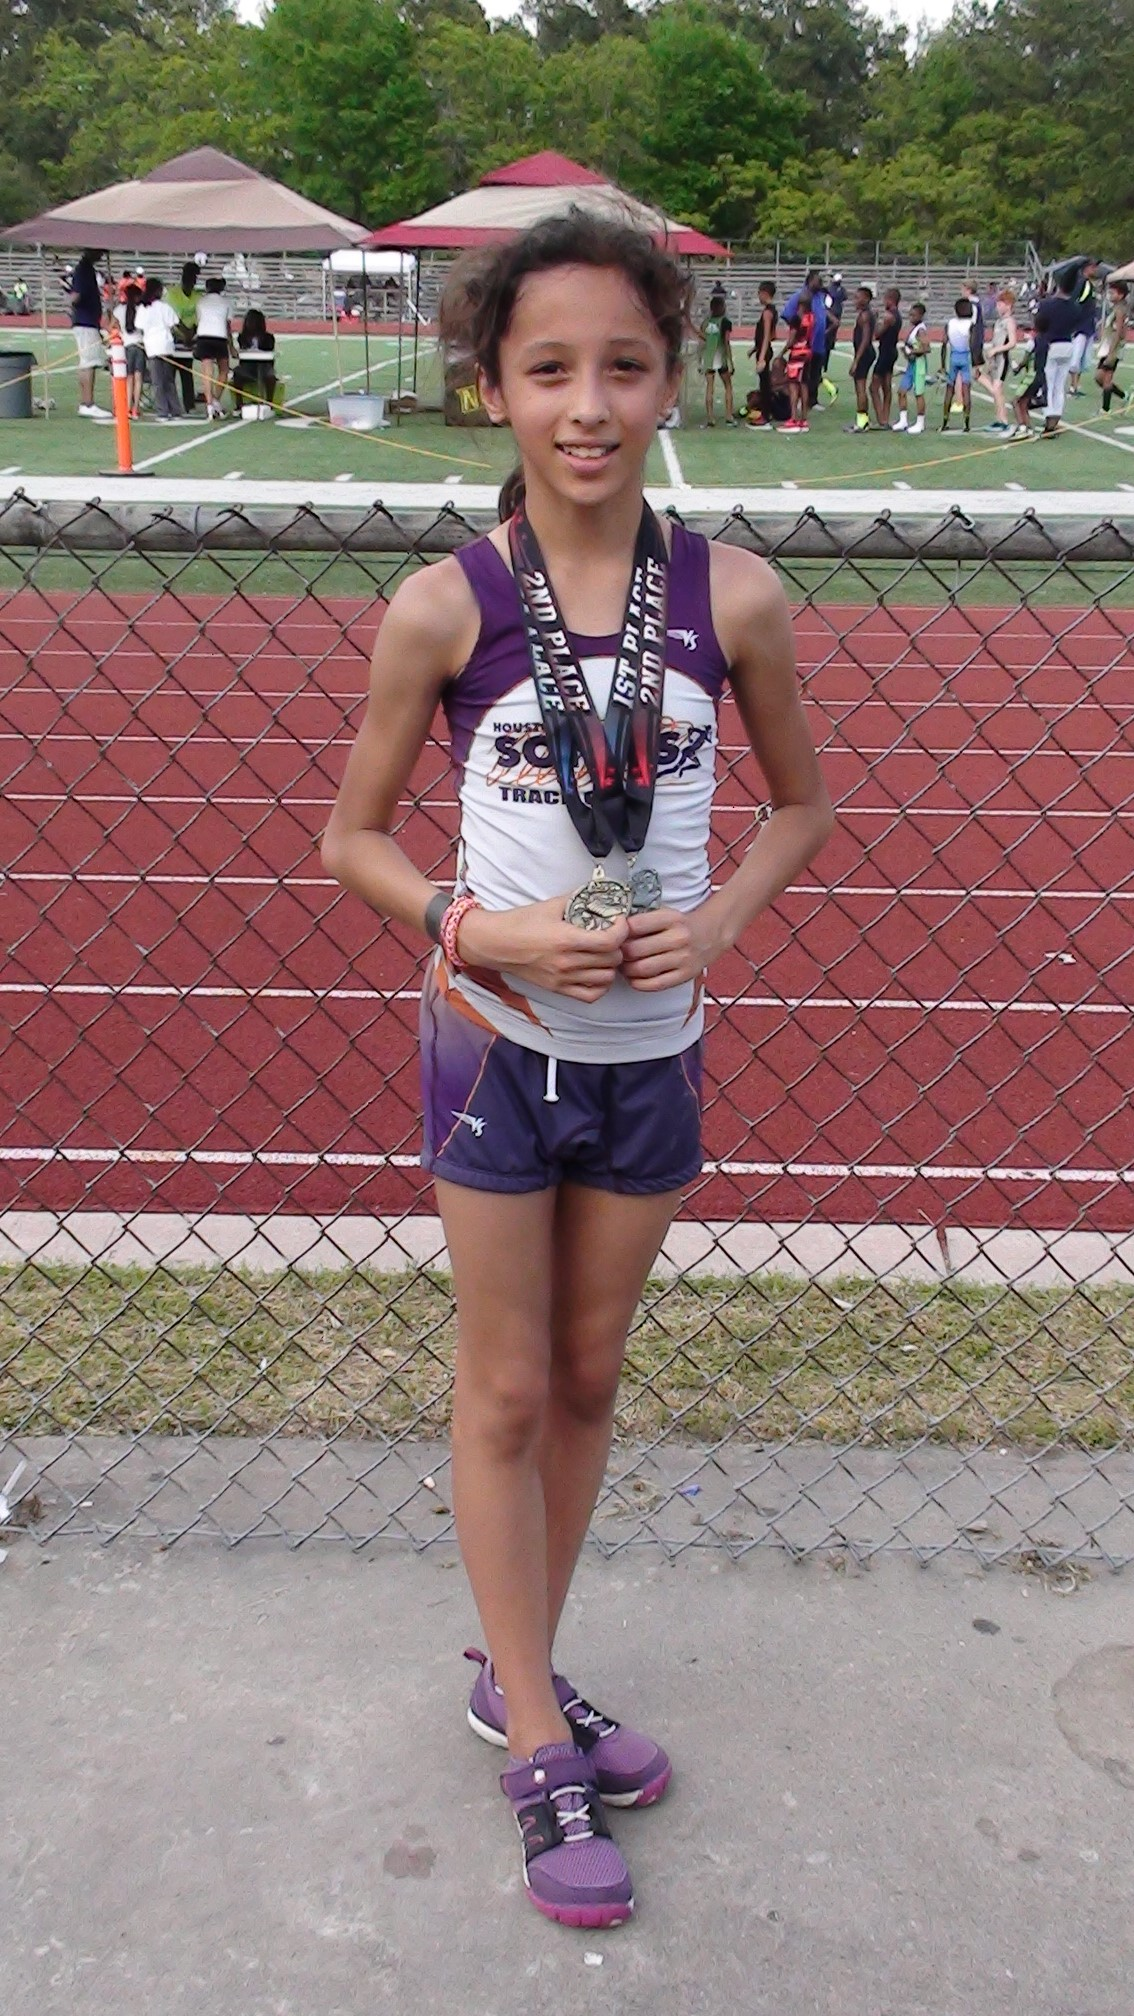 Michelle medaled in 400 and 1500